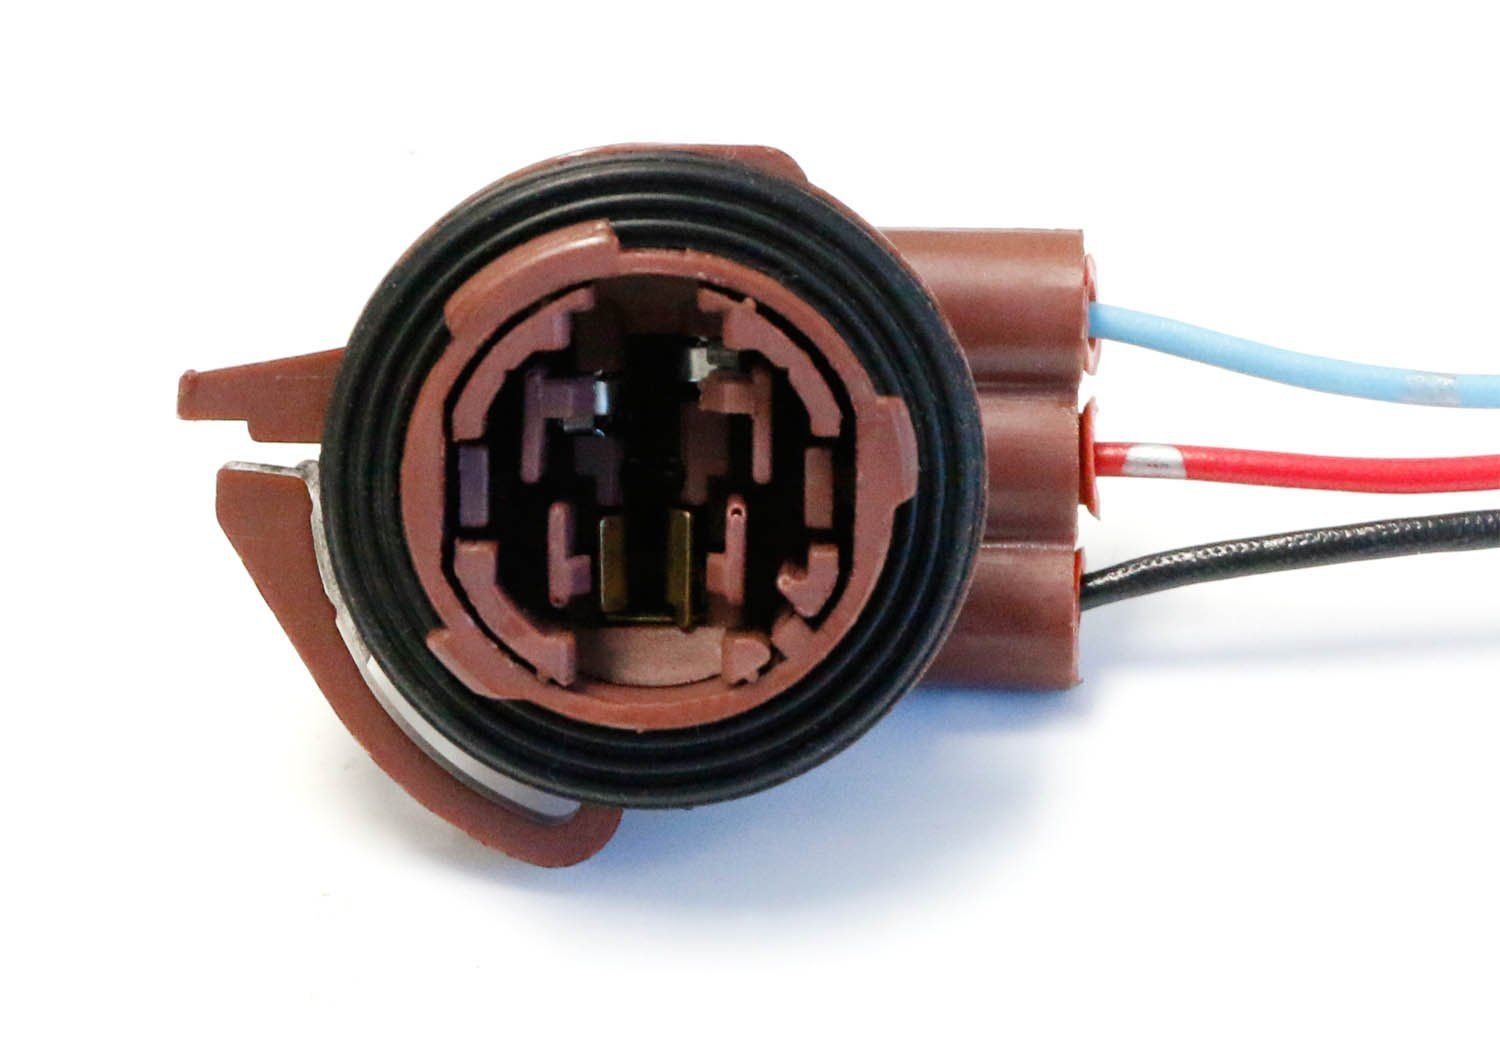 medium resolution of ijdmtoy 2 3156 3157 pre wired harness sockets for repair replacement install led bulbs for turn signal lights drl lamps or brake tail lights sockets